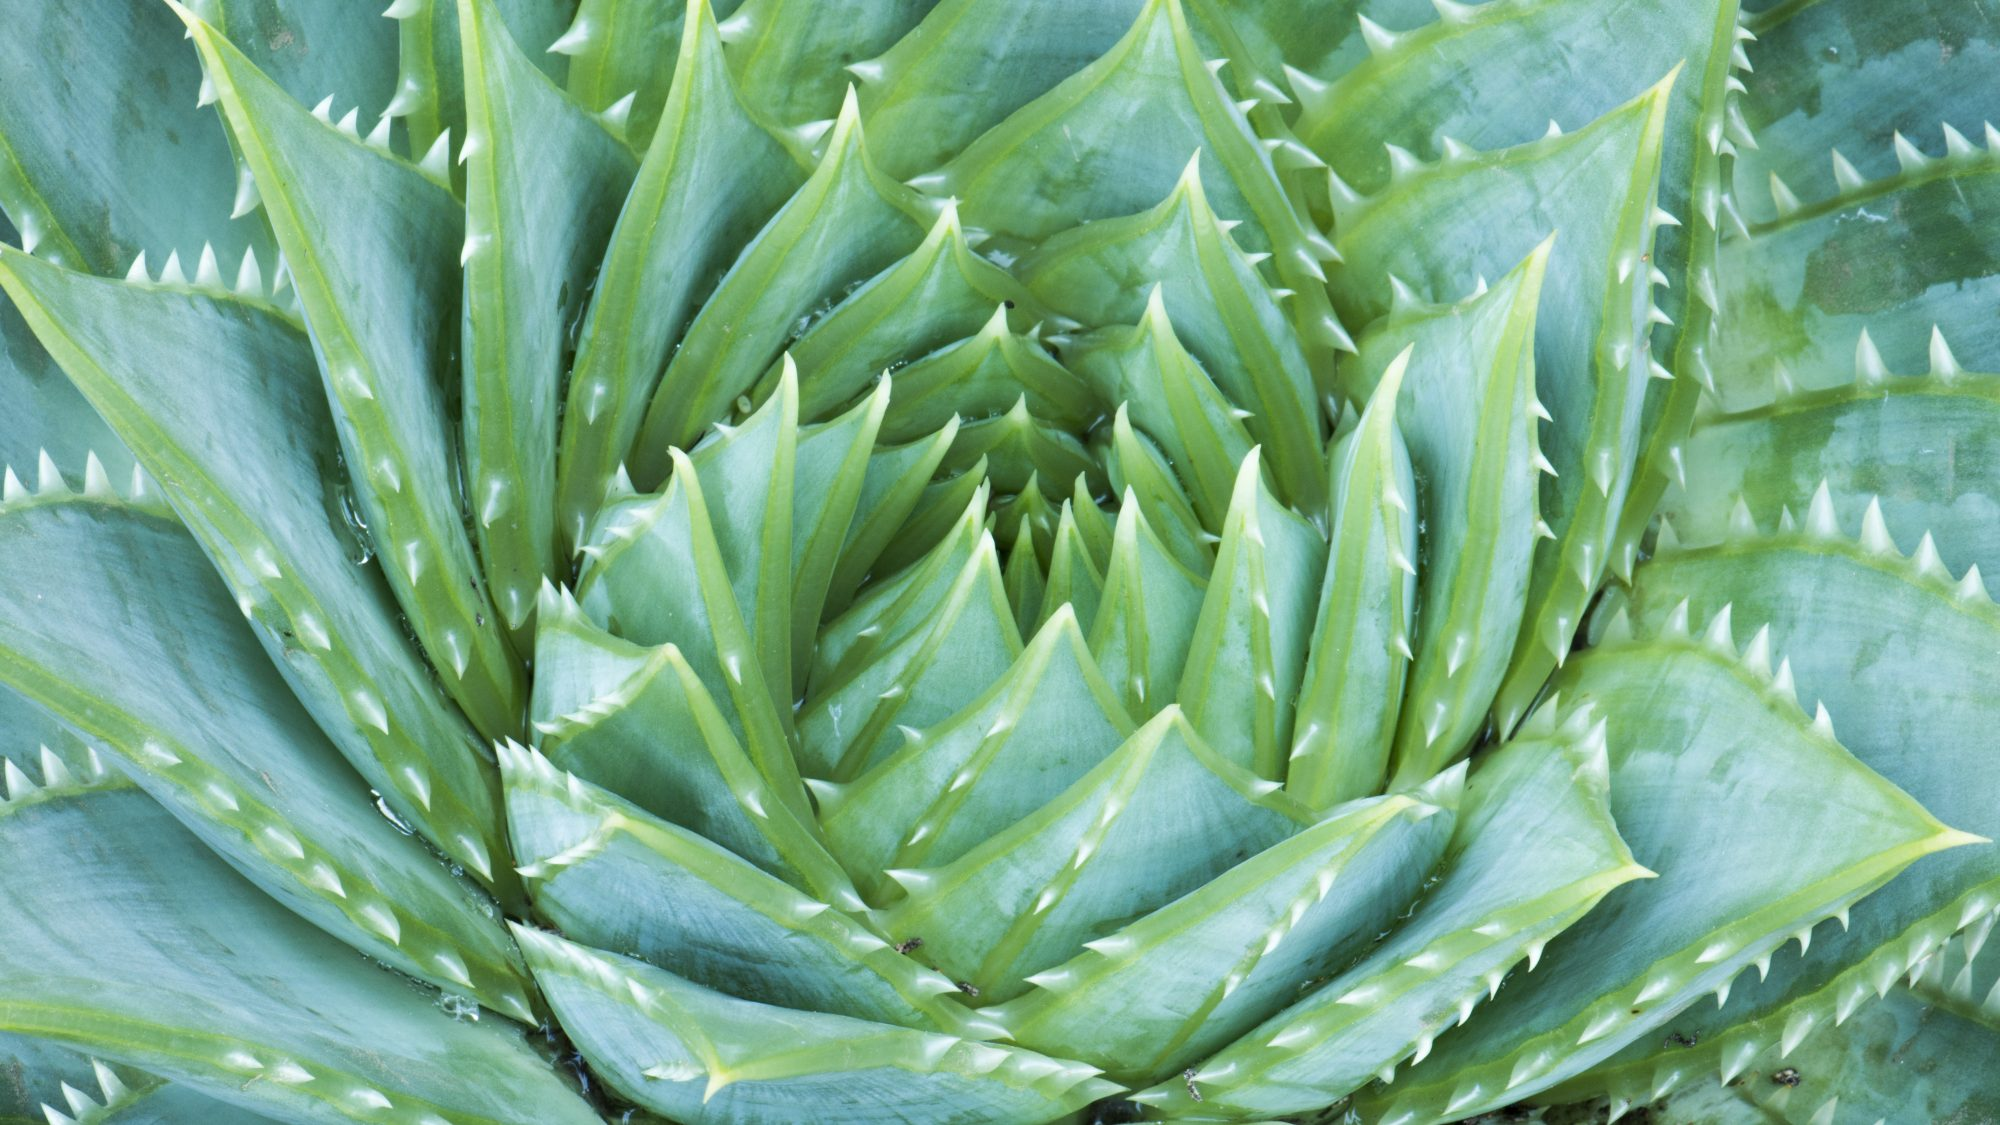 Aloe plant showing spiny spiral form in grey green